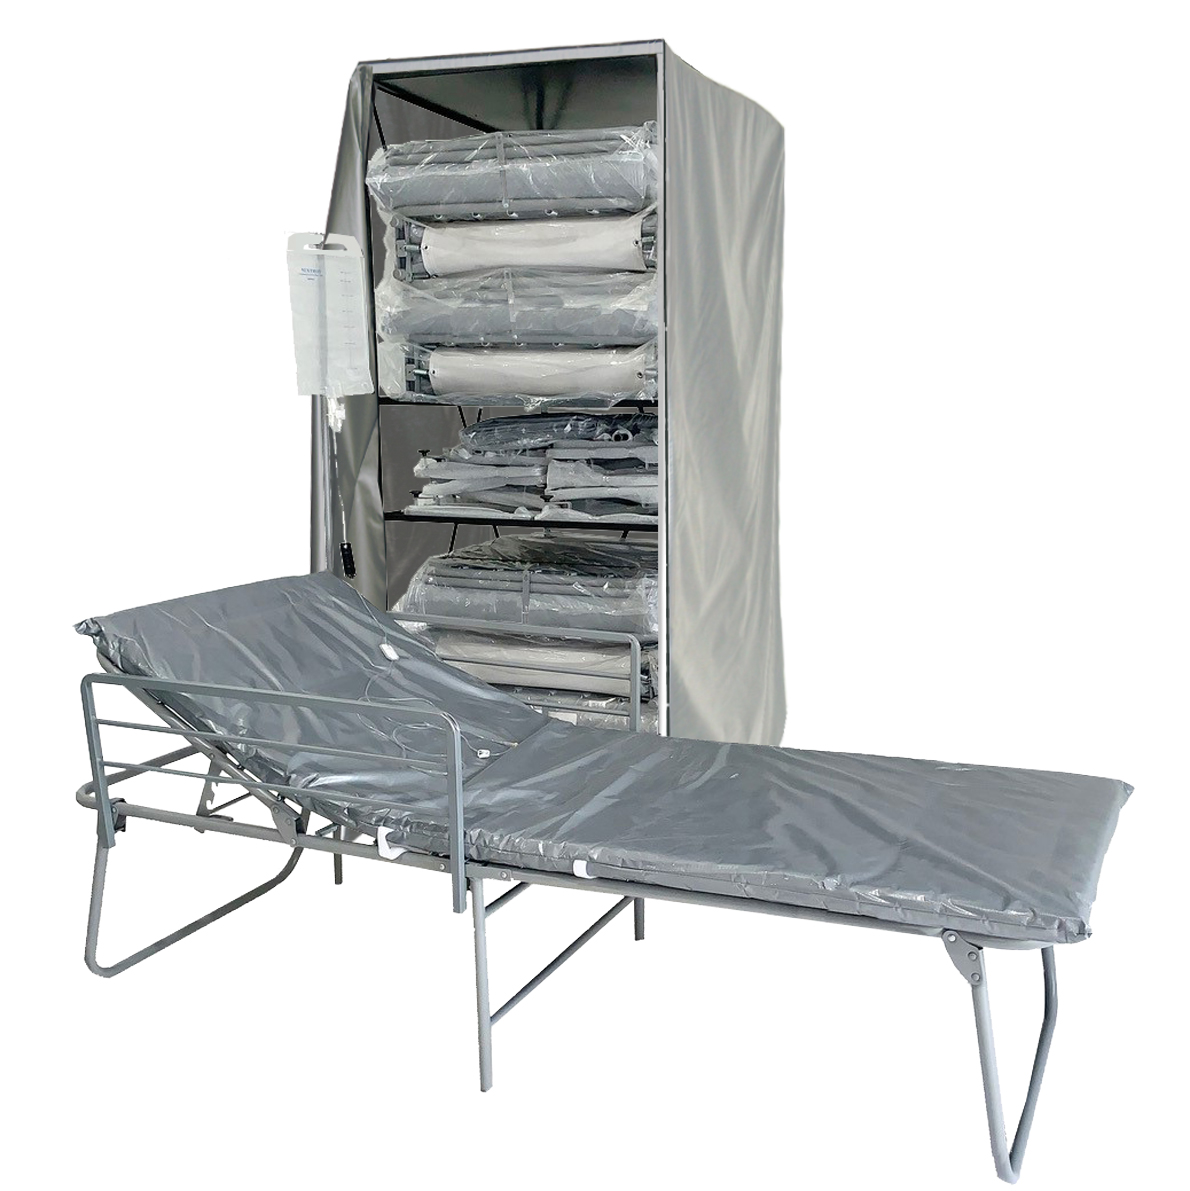 Emergency Bed Cart with FEMA-ADA Cot with Side Rails and IV Pole image